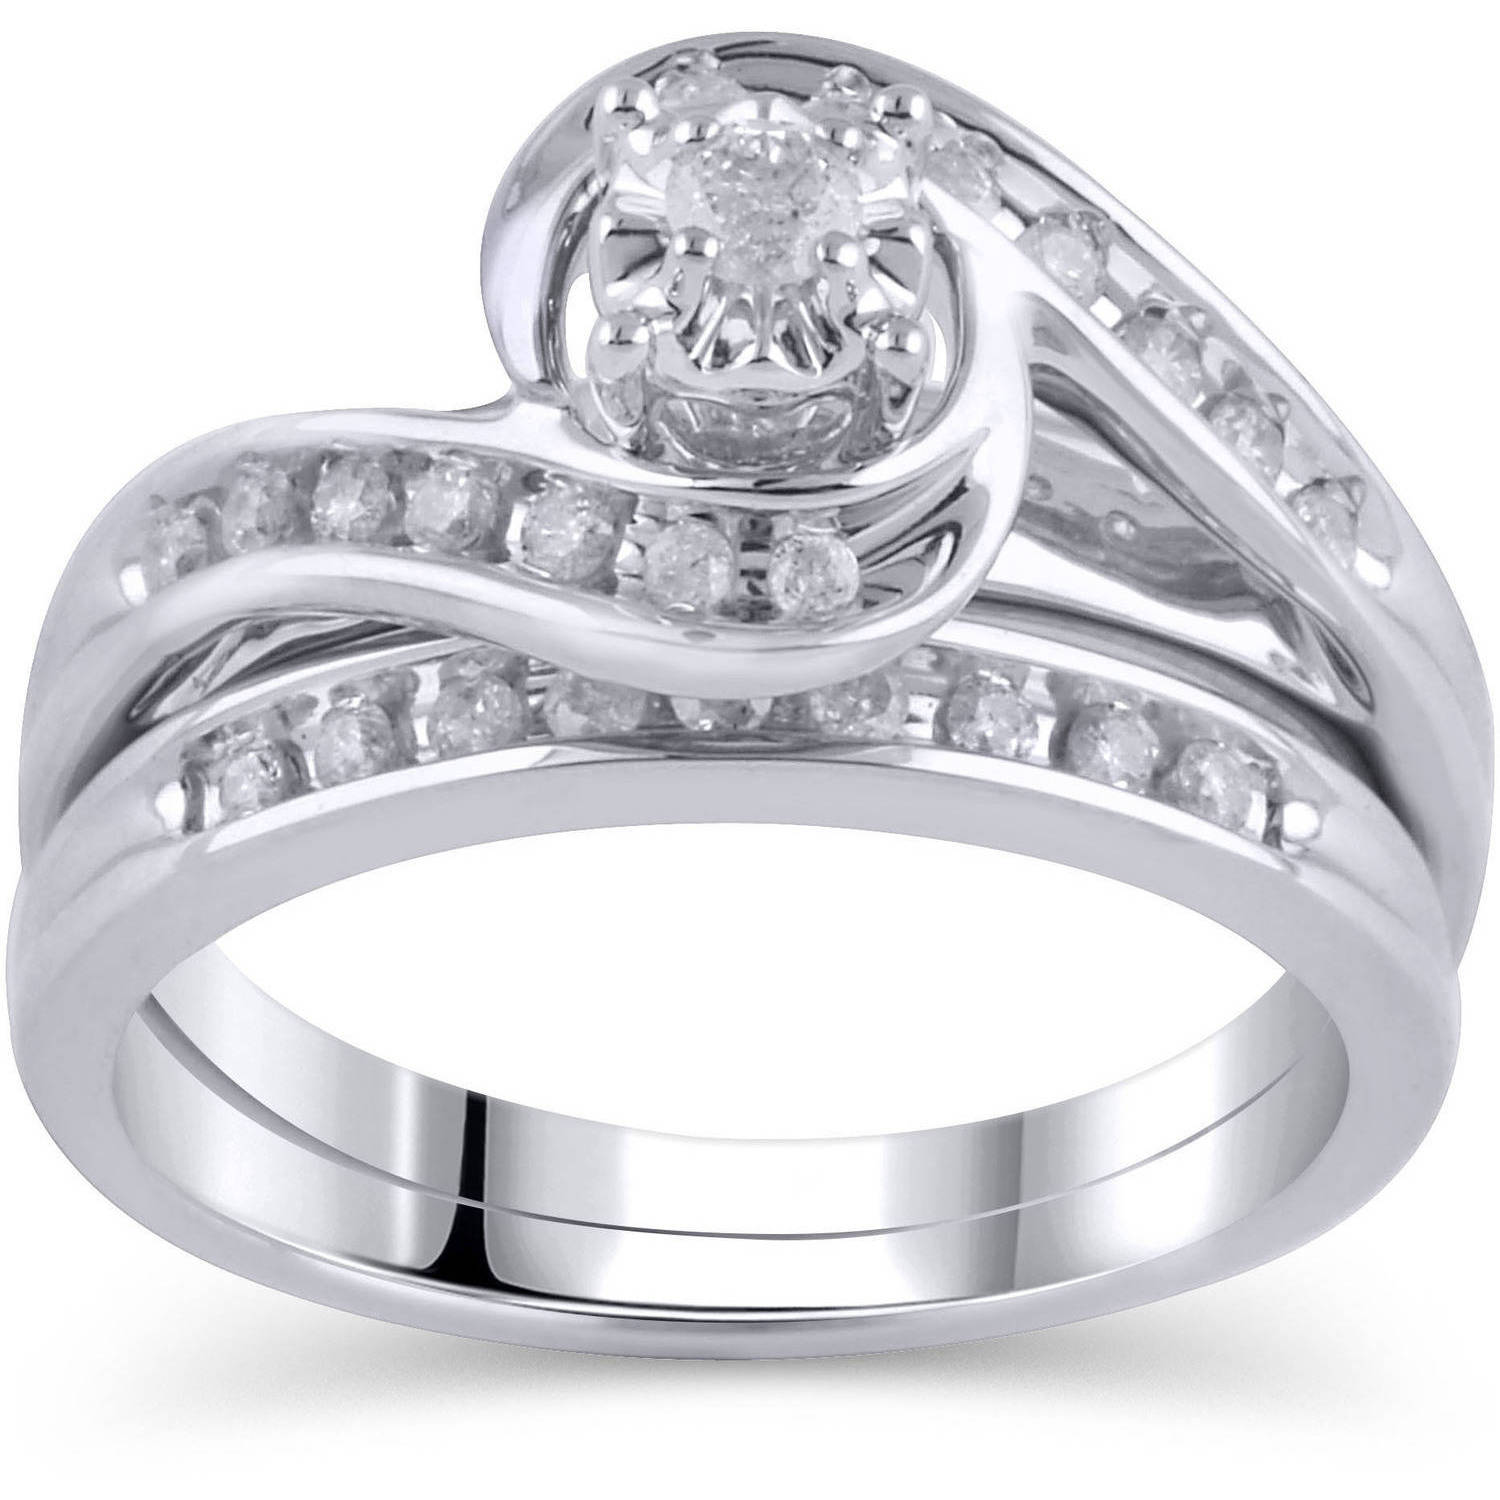 1/3 Carat T.W. Diamond Bypass Ring Bridal Set in 10kt White Gold, Size 6